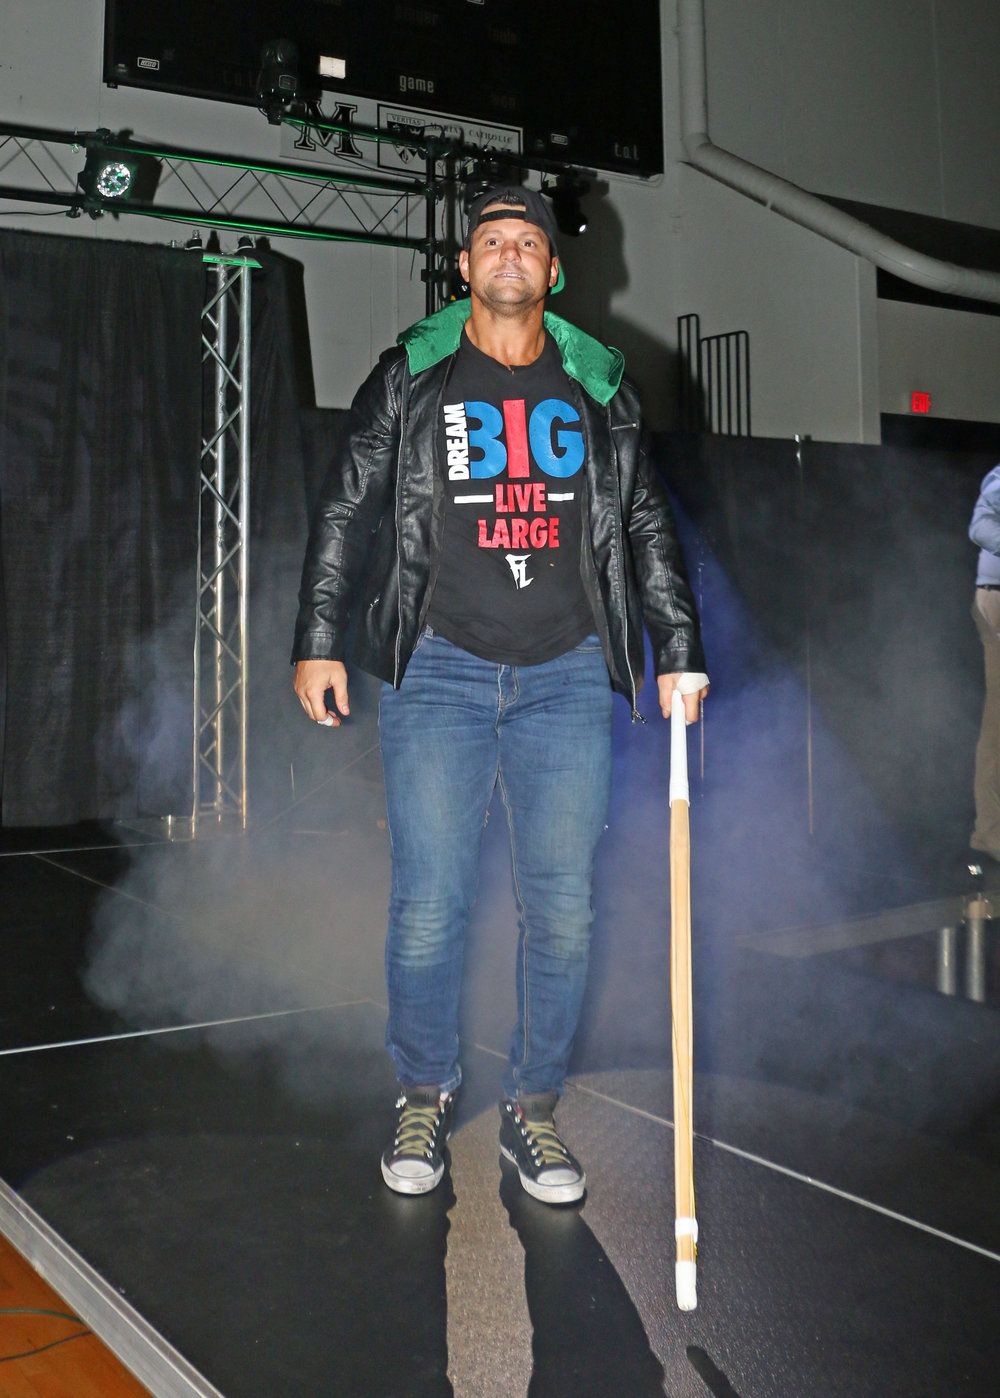 Eddie Edwards, with kendo stick in hand, prepares to walk down the ramp for his street fight against Austin Aries.